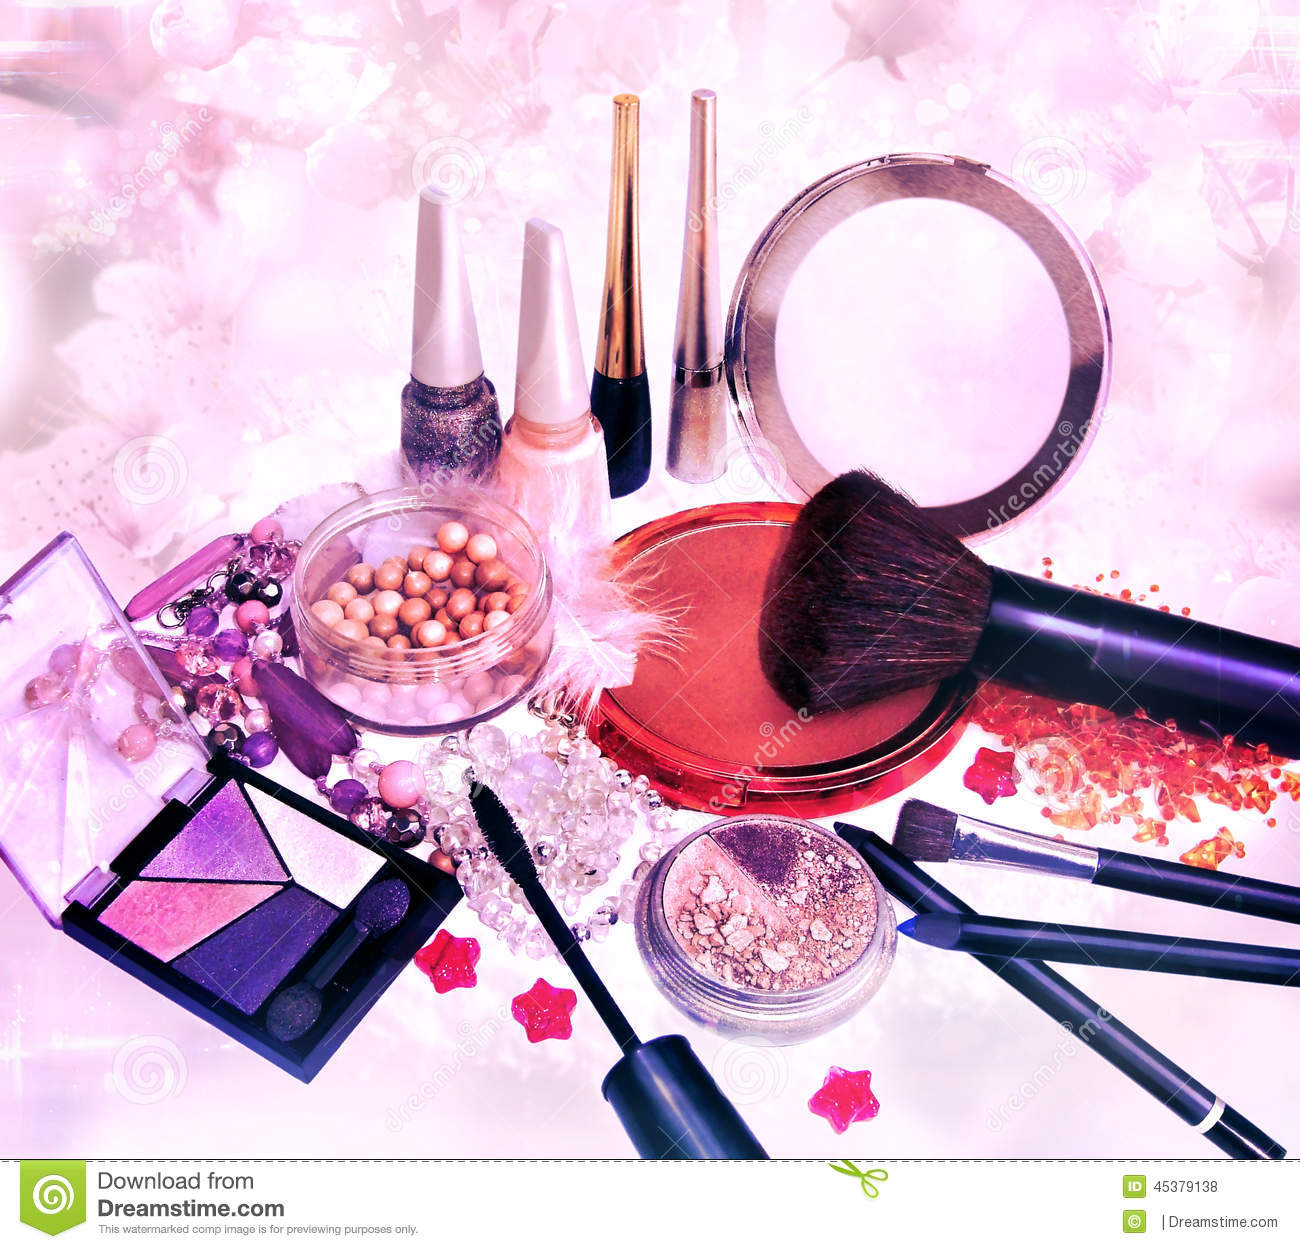 Makeup products and jewelry on floral background stock for What is cosmetics made of